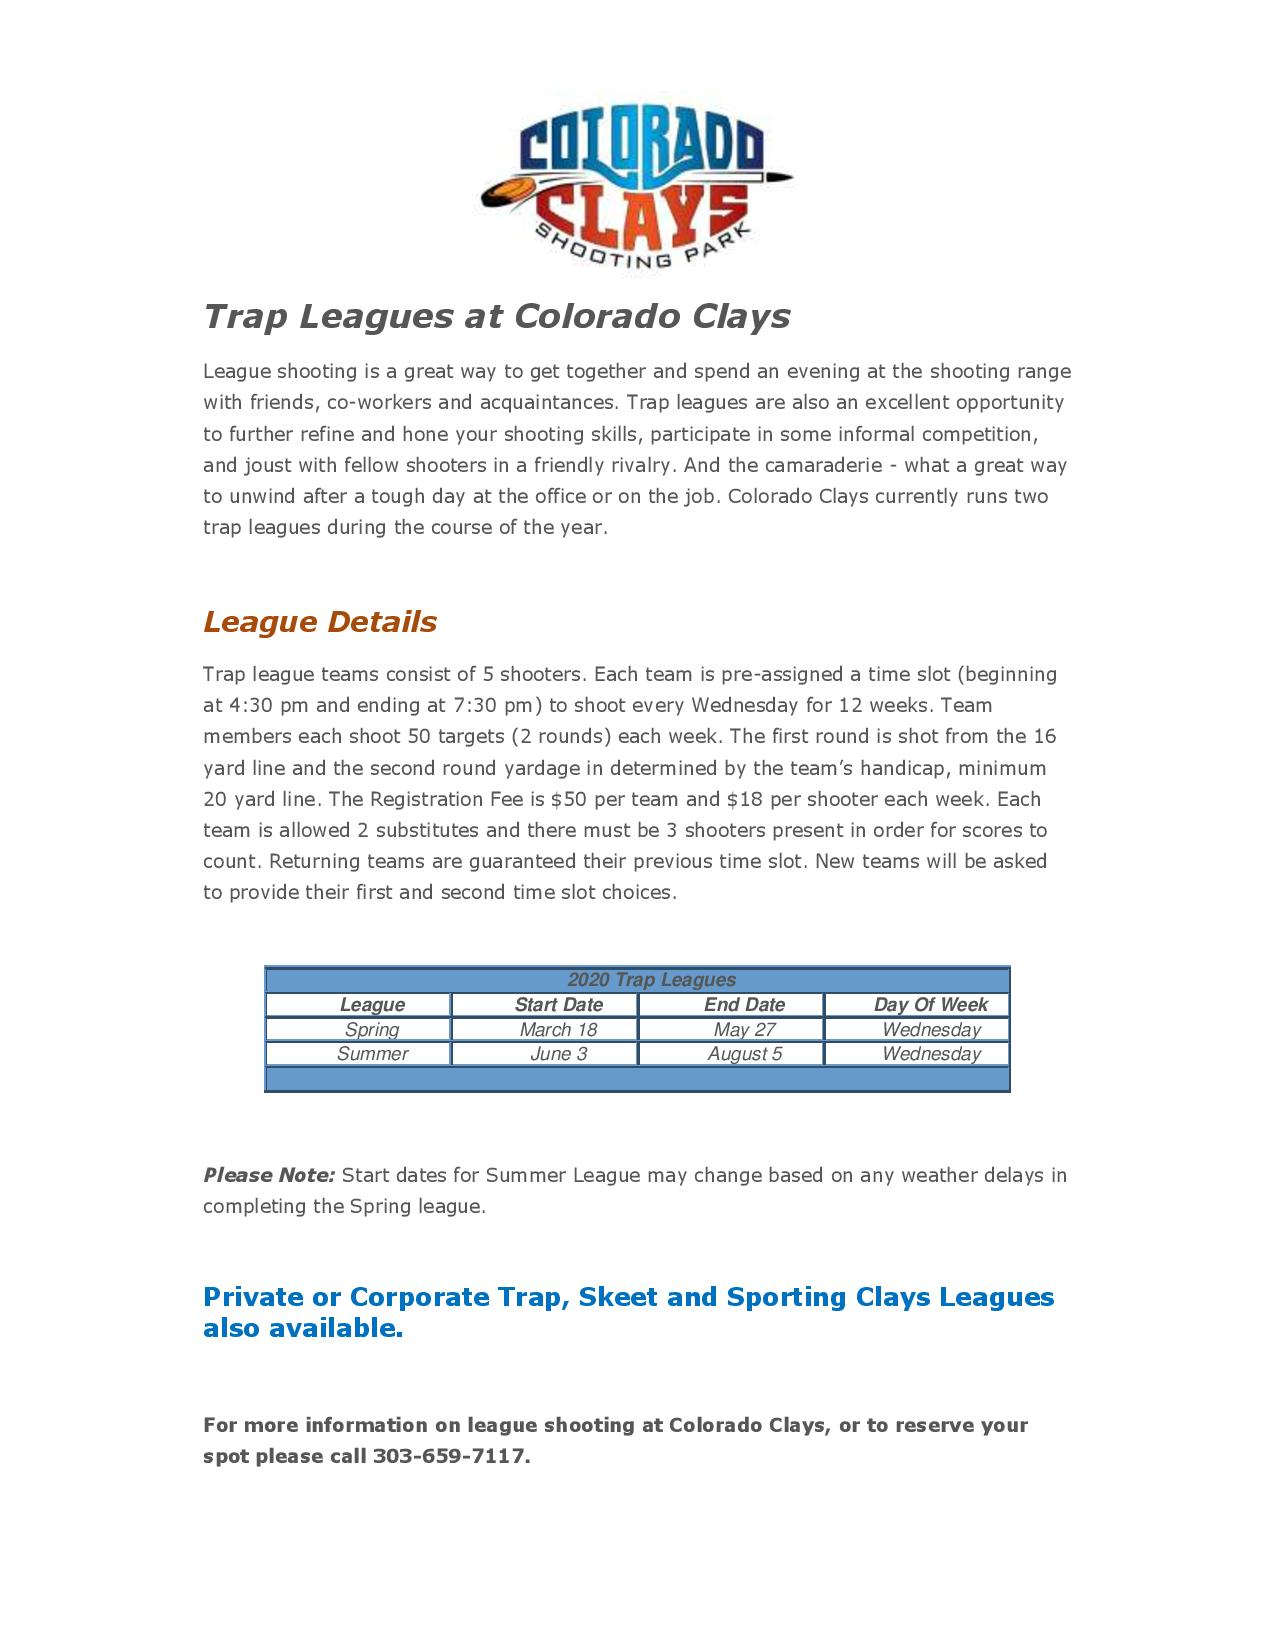 Summer Trap League